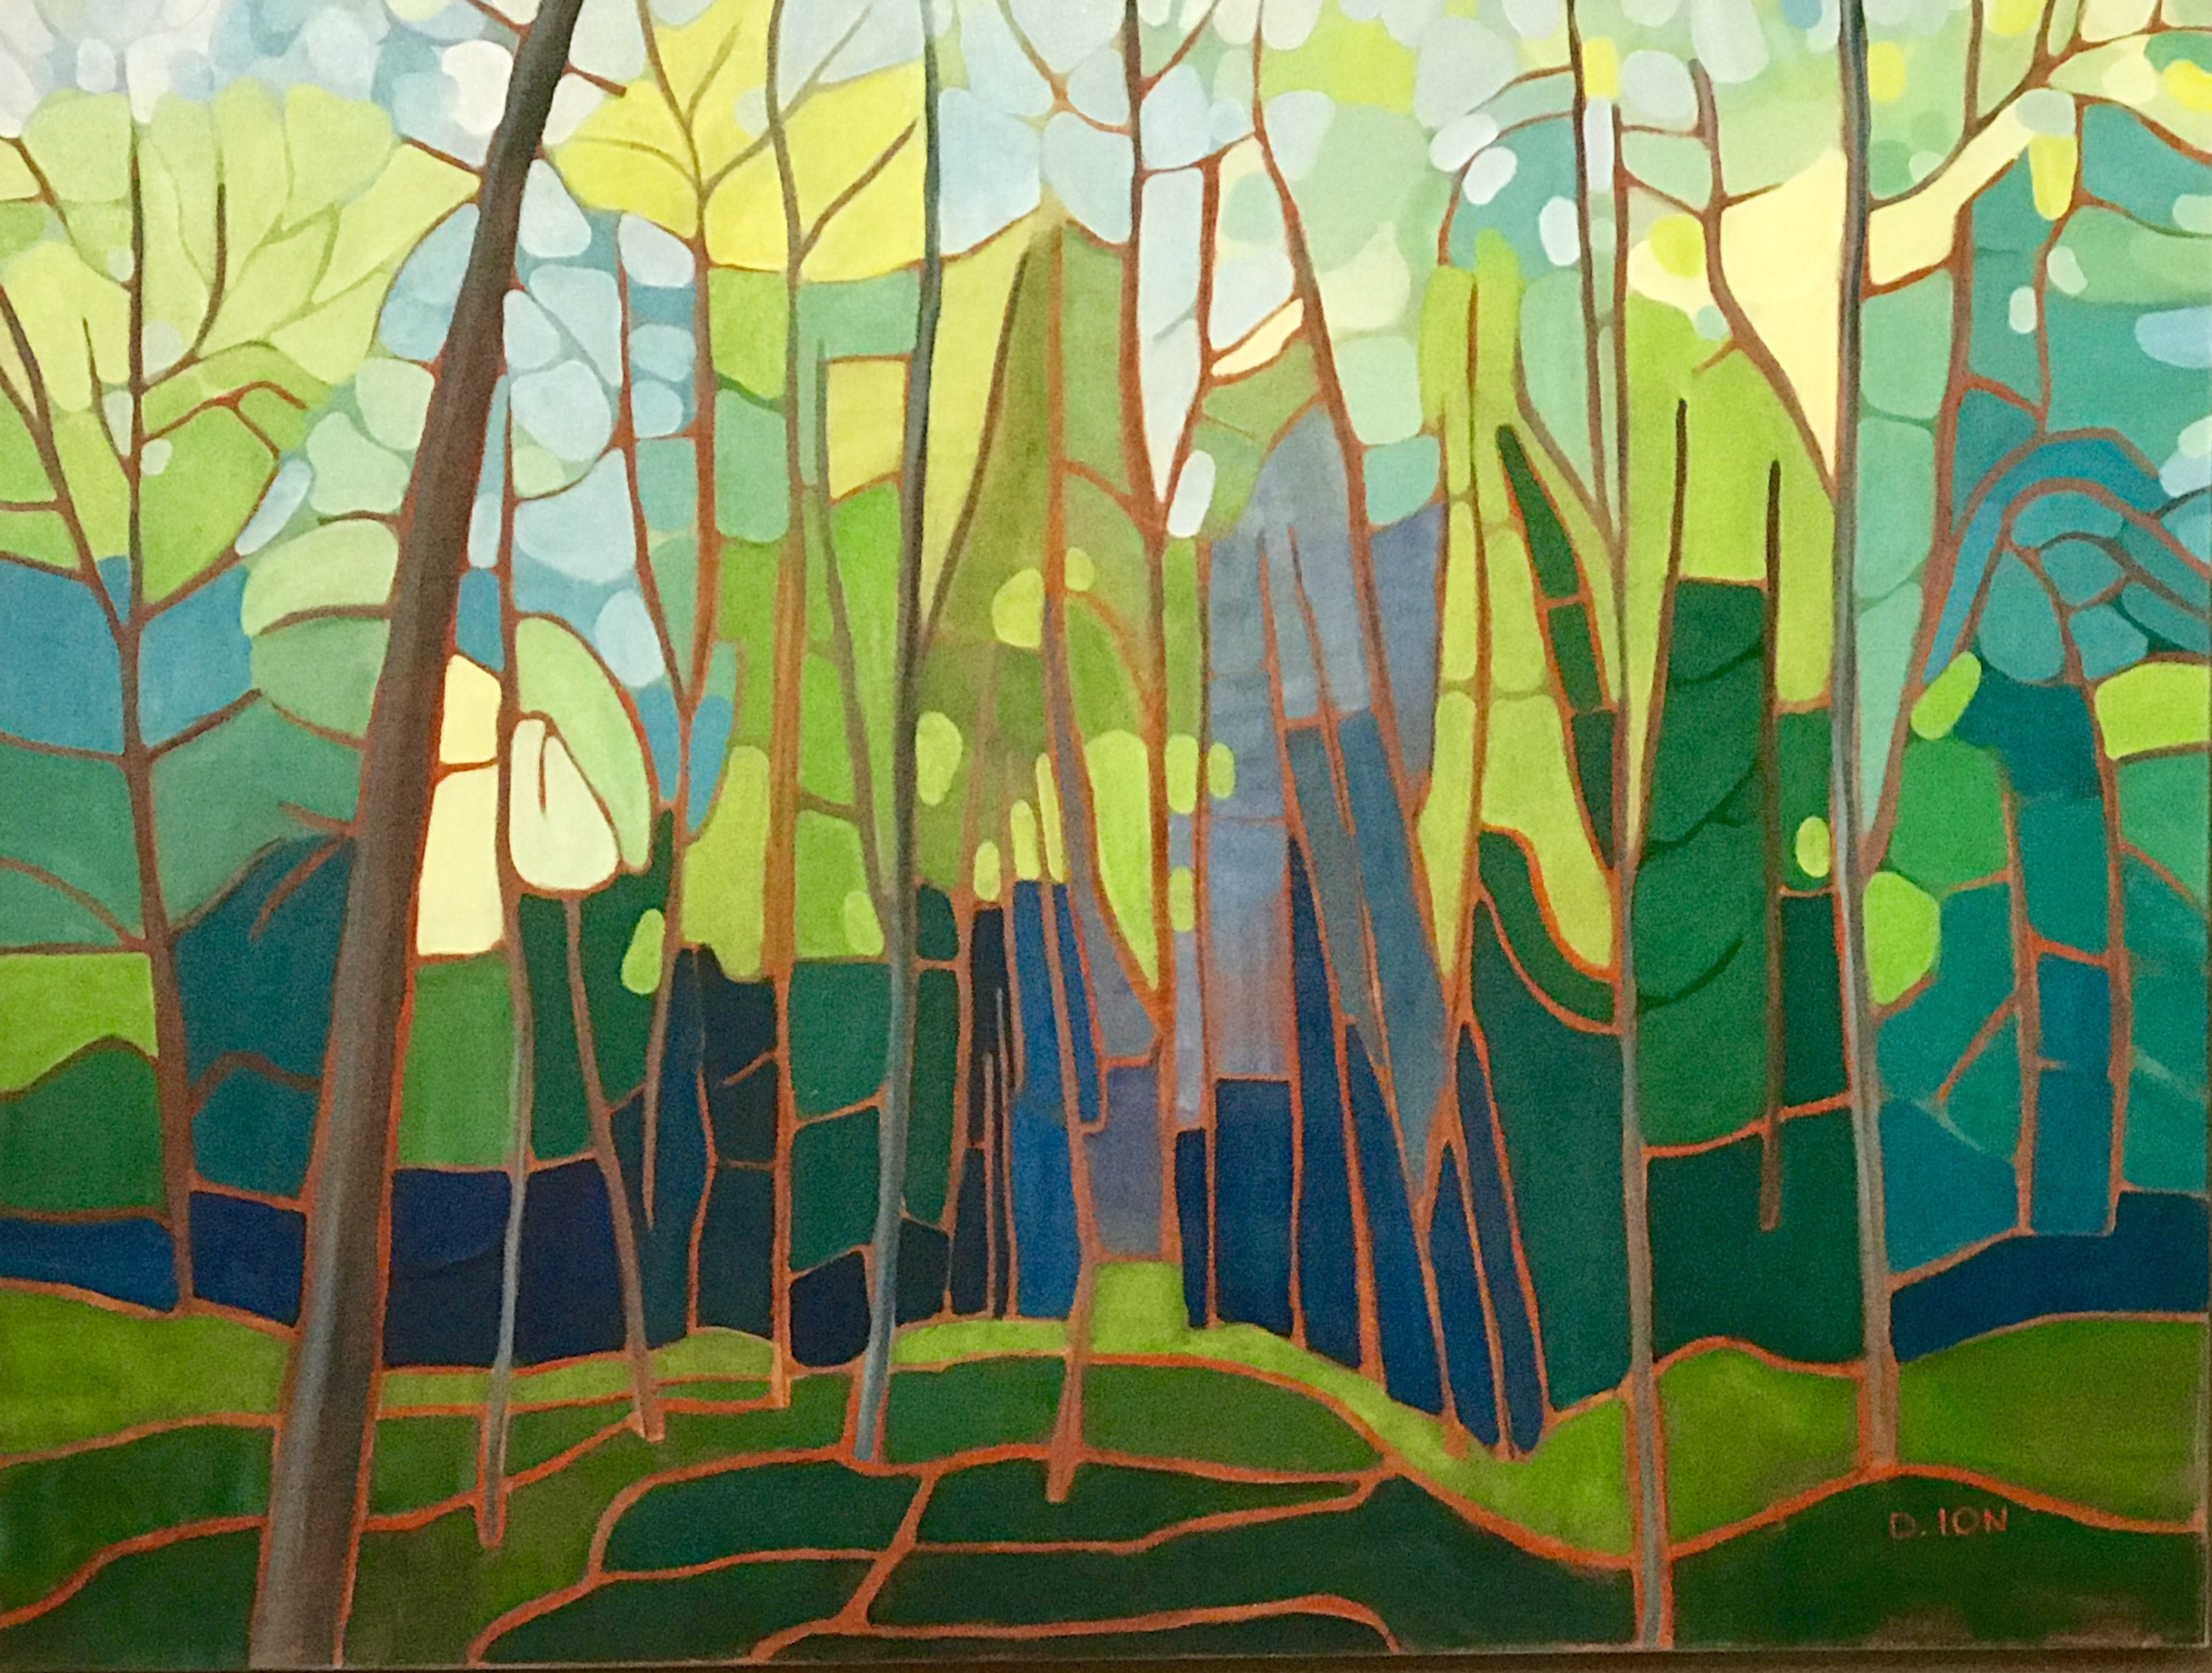 Emily's Forest 1 30x40 in.